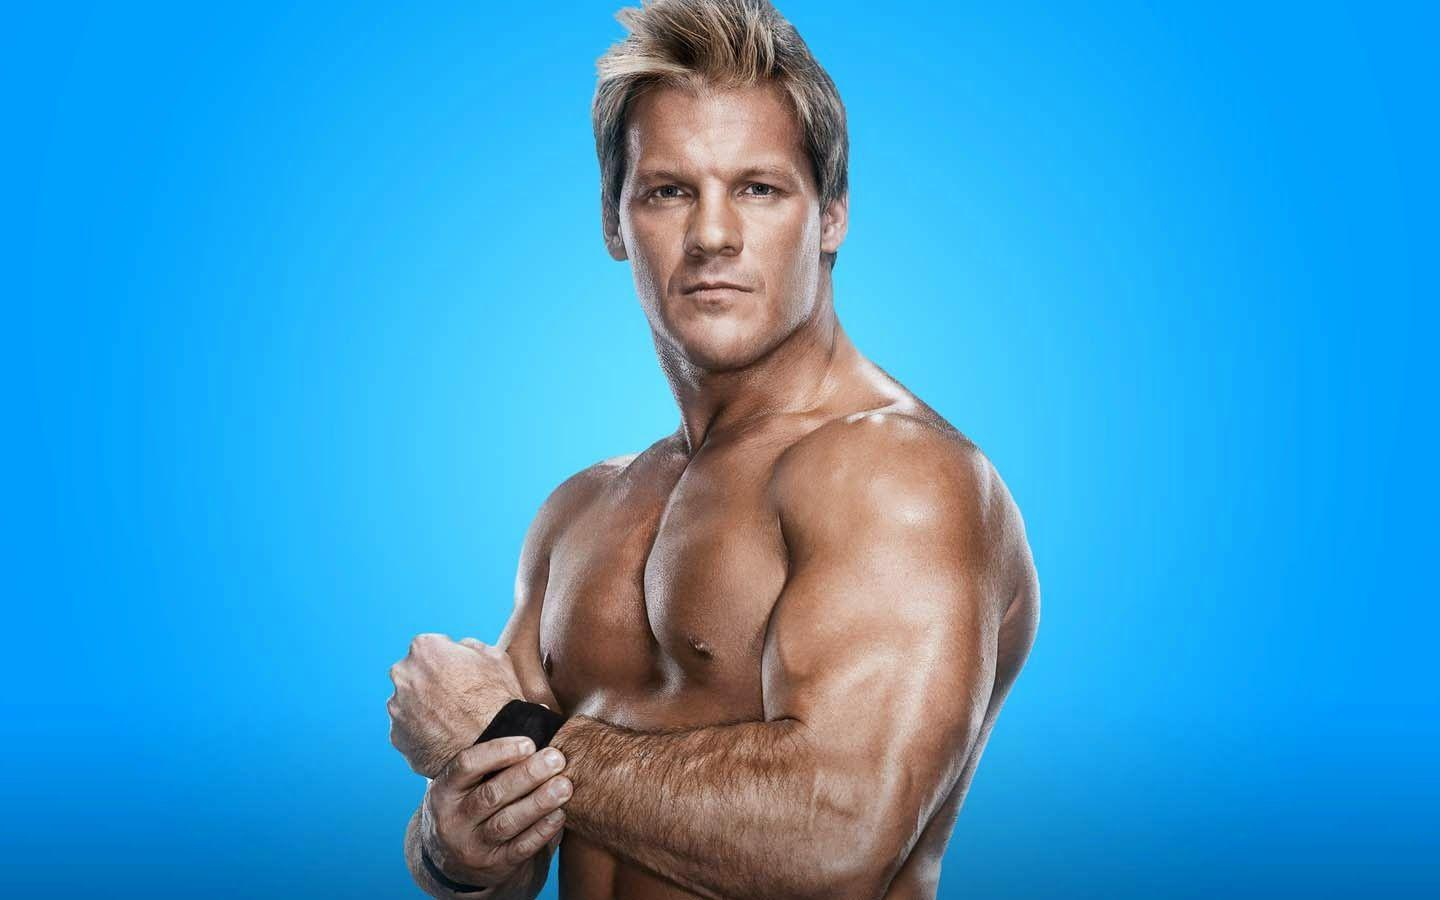 Chris Jericho Body Measurements Height Weight Shoe Size Biceps Age